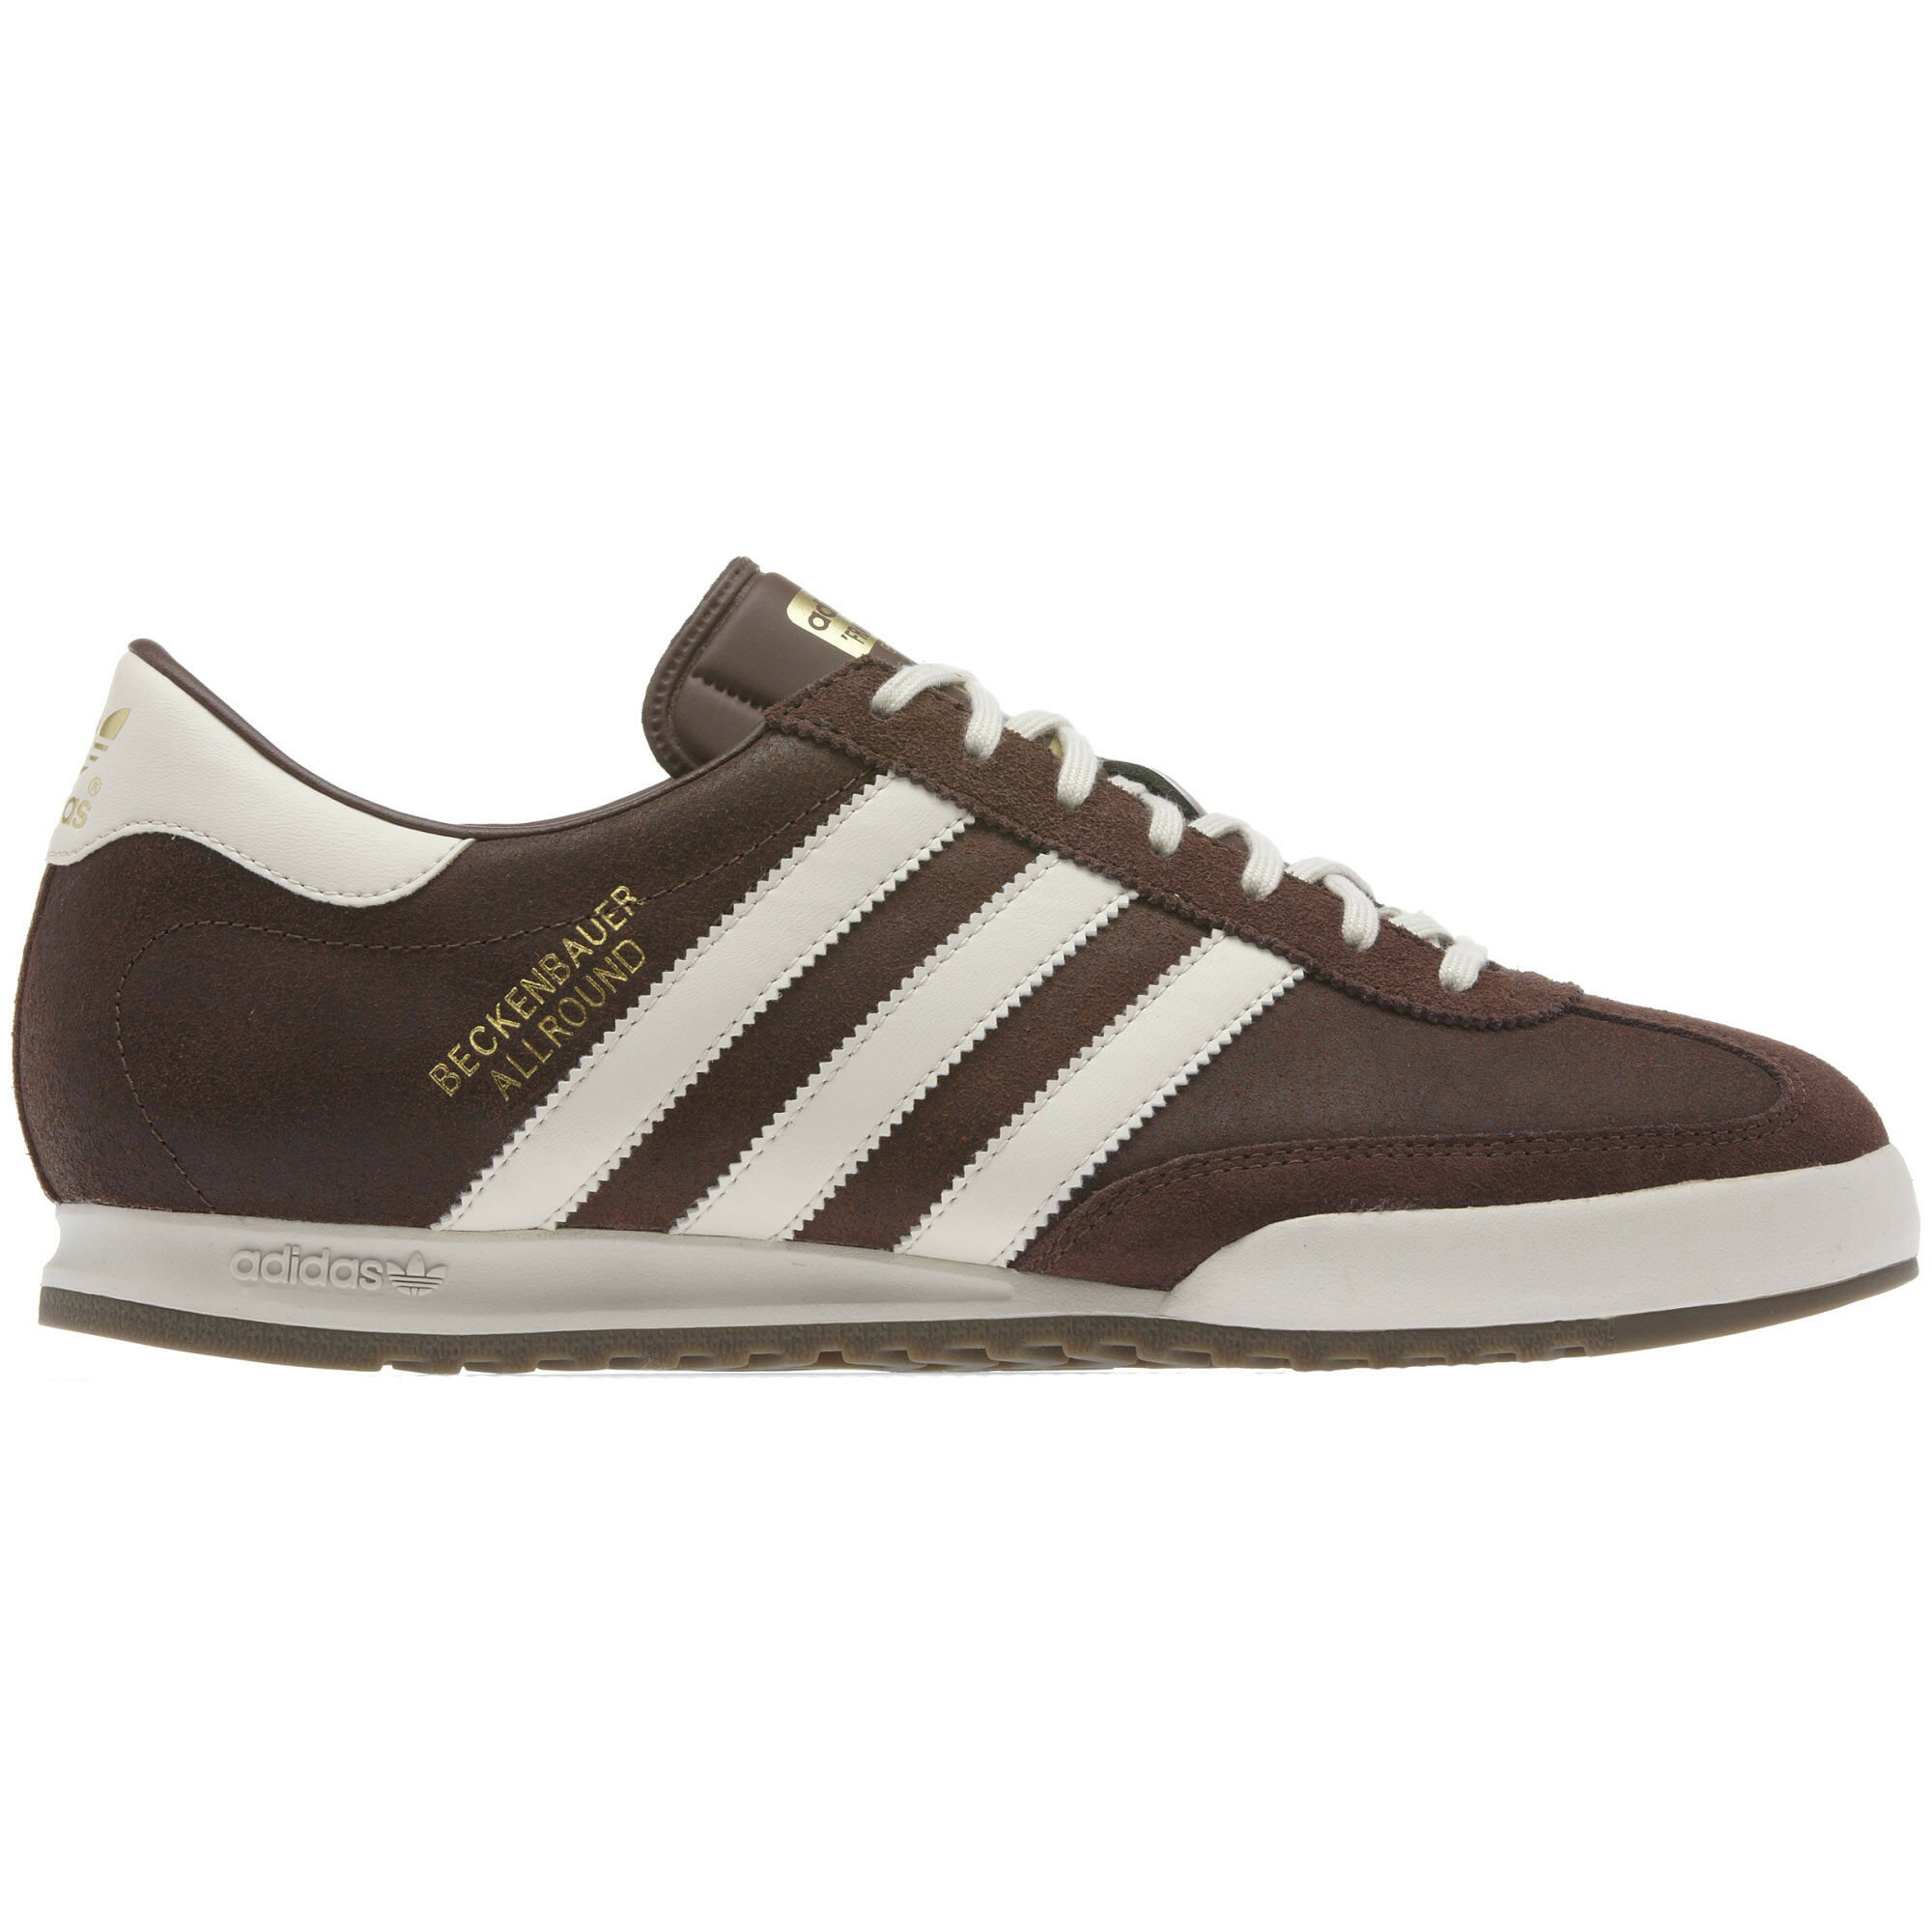 brown adidas samba trainers